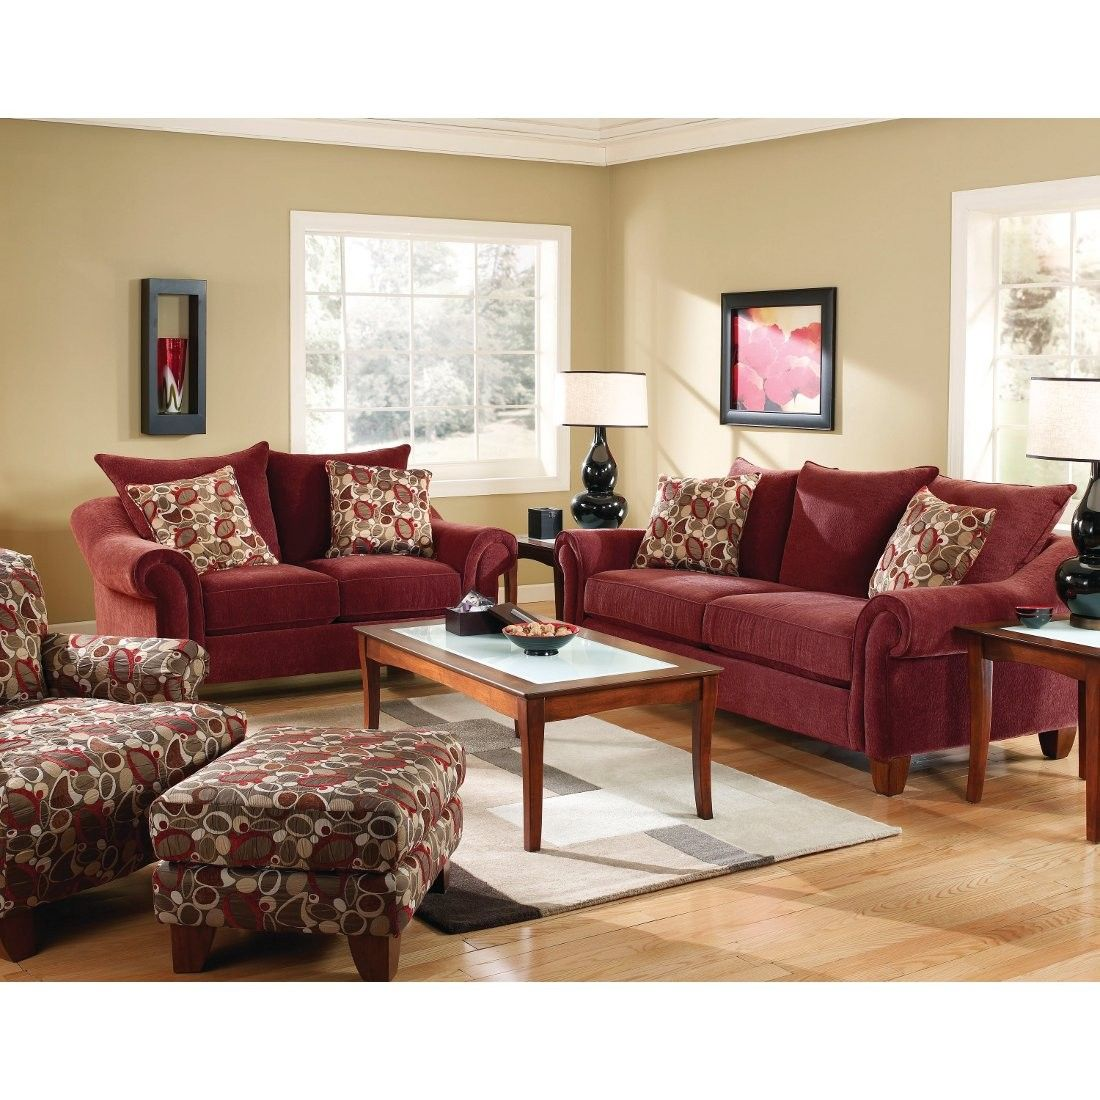 Corinthian Cebu Sofa Wine 2833s Conn S Home Plus 699 00